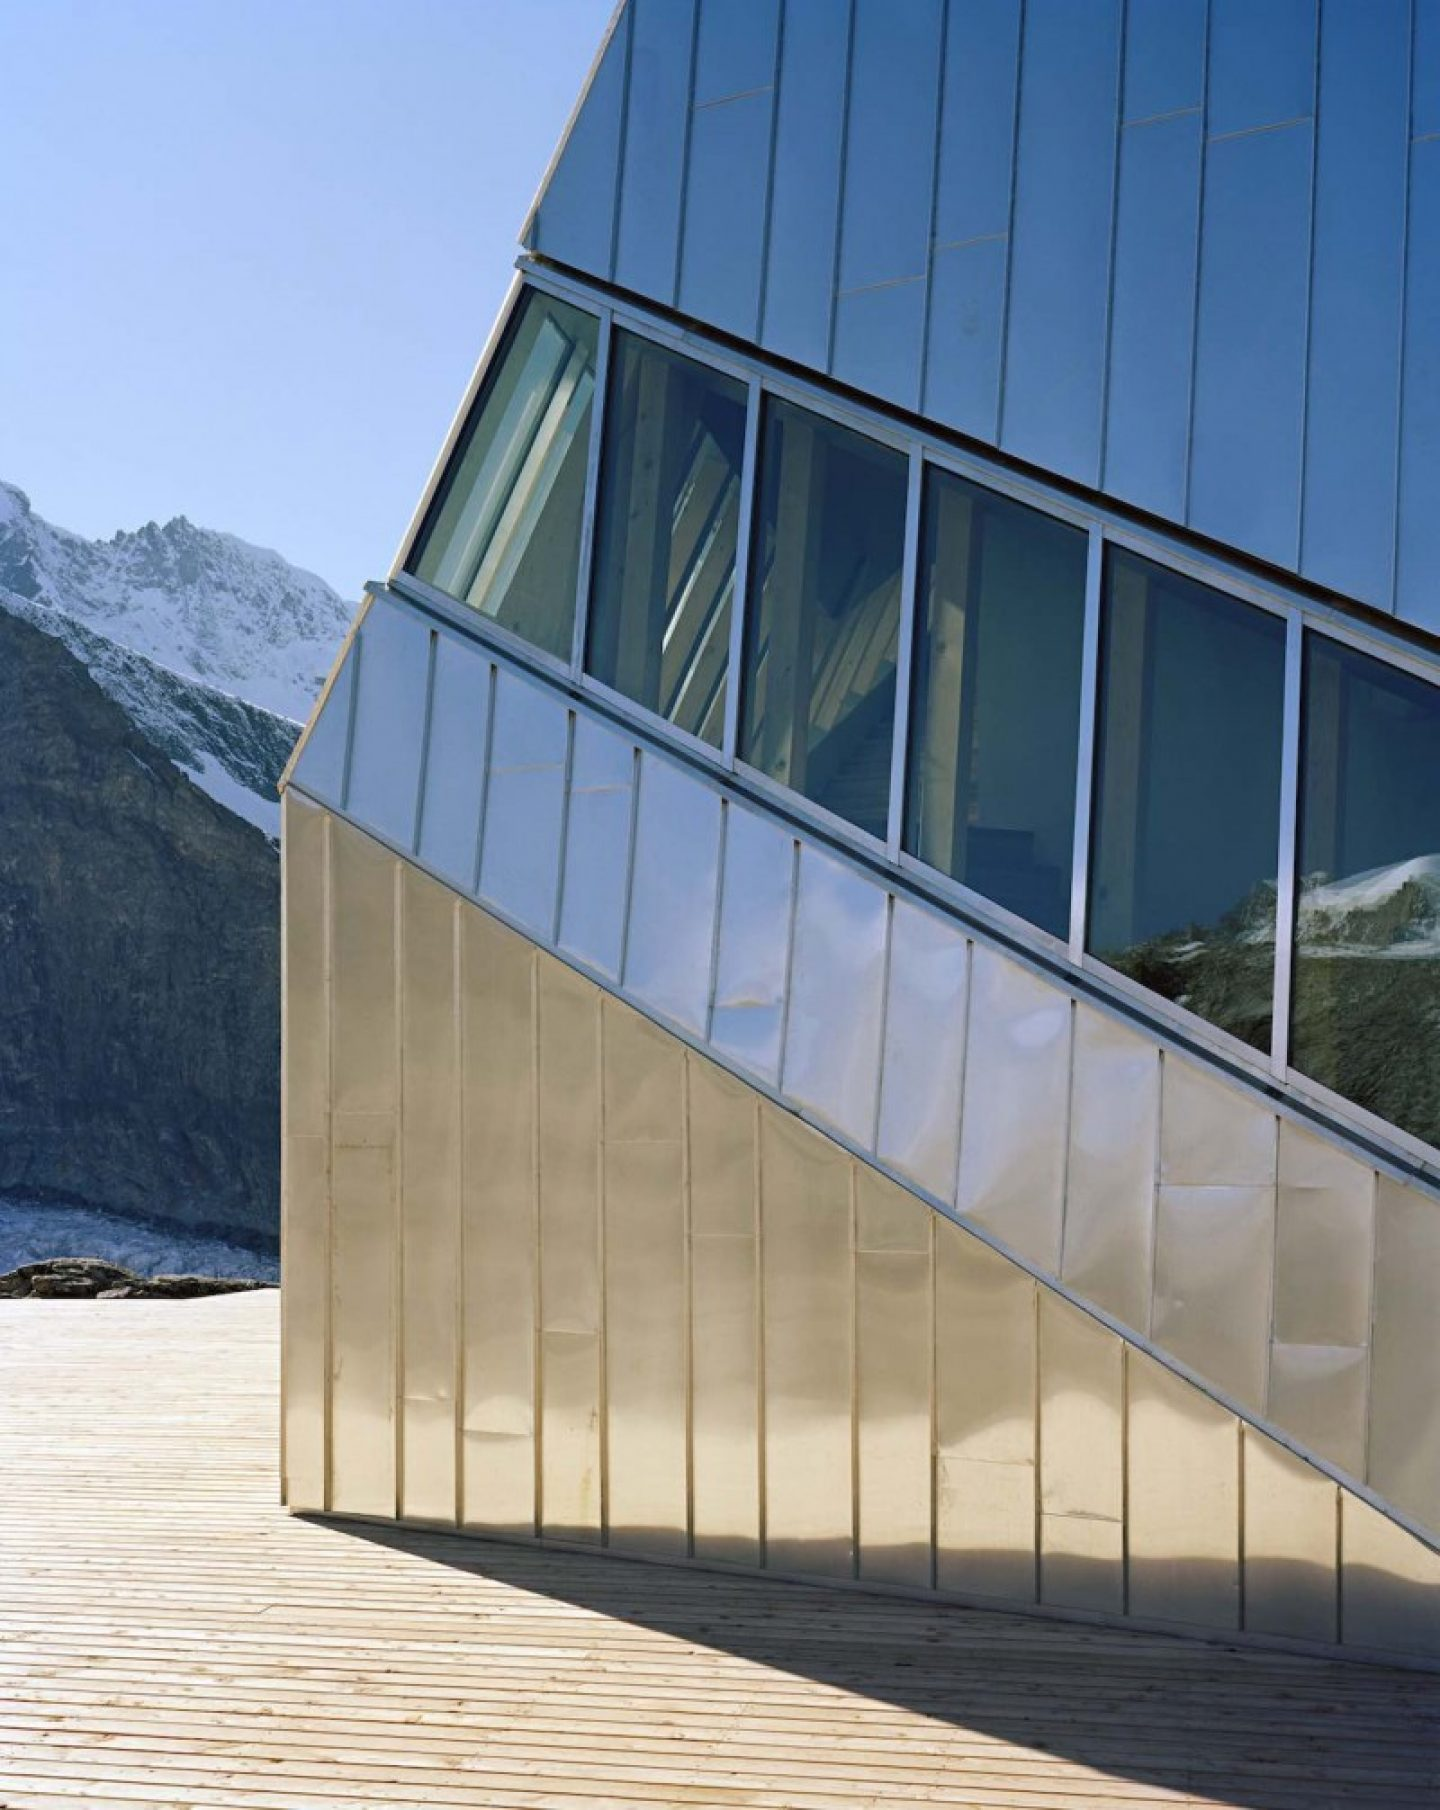 Architecture_Monte_Rosa_Hut_Bearth_Deplazes_Architekten06